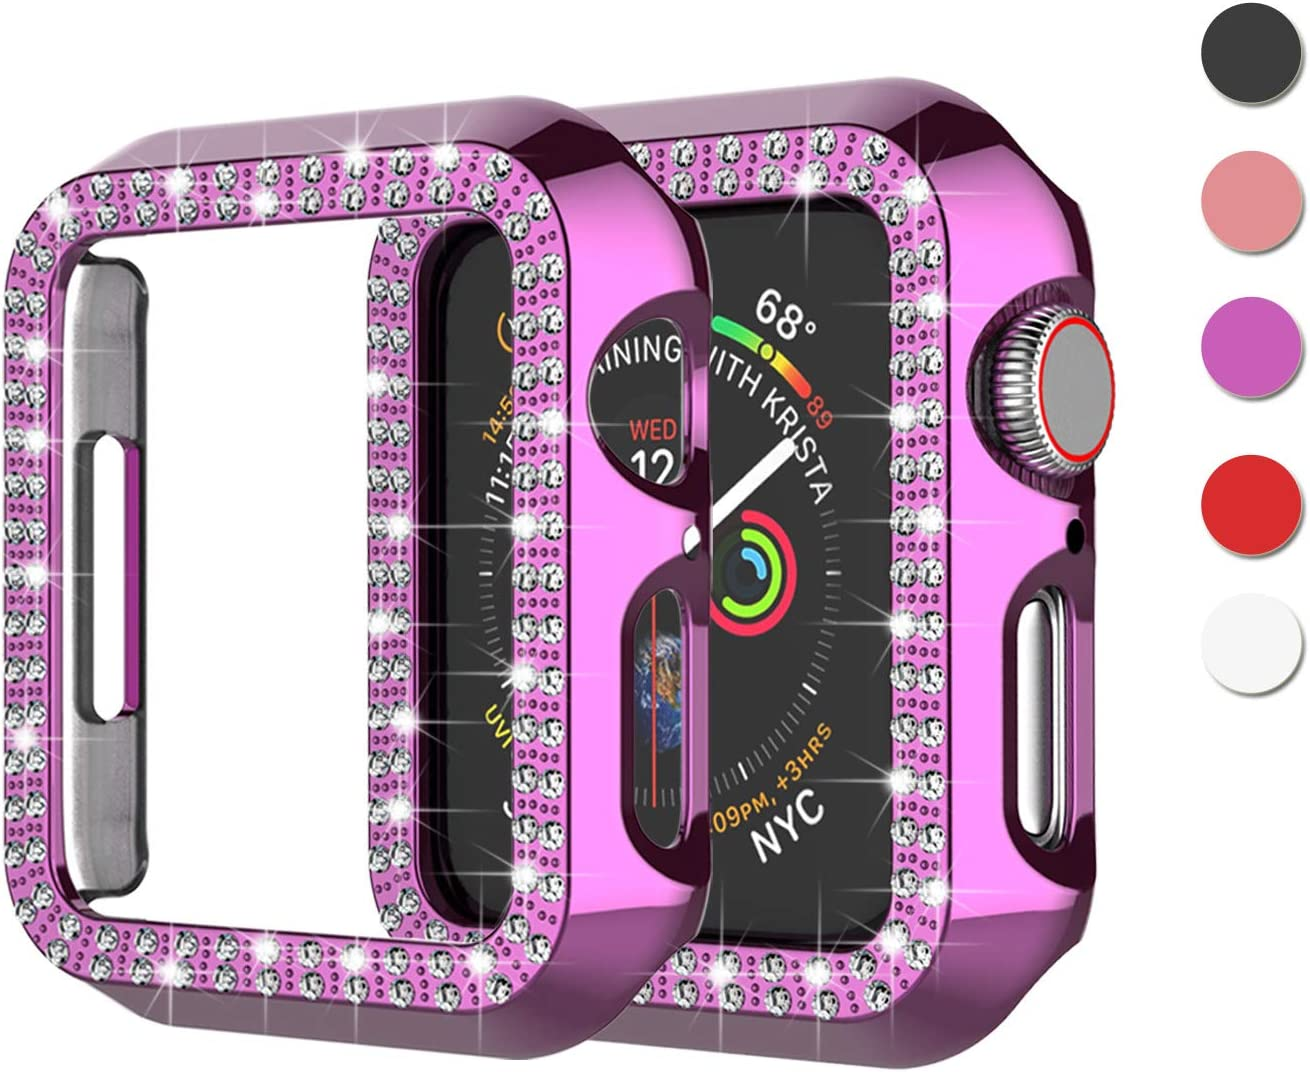 Njjex Bling Case Compatible For Apple Watch 38mm 40mm 42mm 44mm, Crystal Diamond Apple Watch Protector Case Slim PC Anti-Scratch Bumper Frame Protective Cover For iWatch Series SE/6/5/4/3/2/1 [Purple]